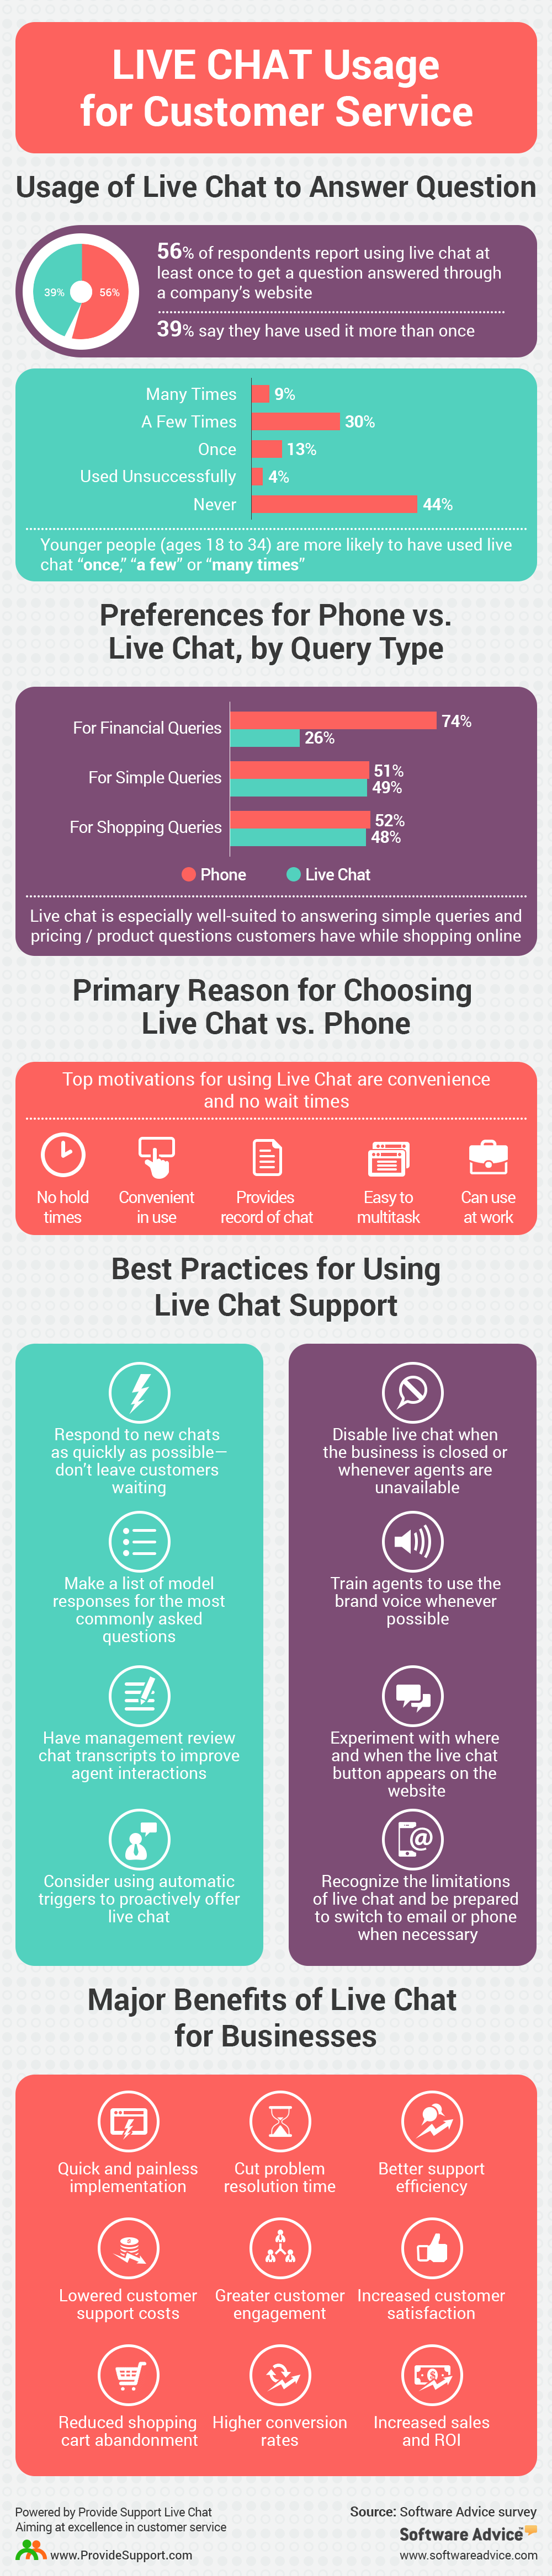 Live Chat Usage for Customer Service